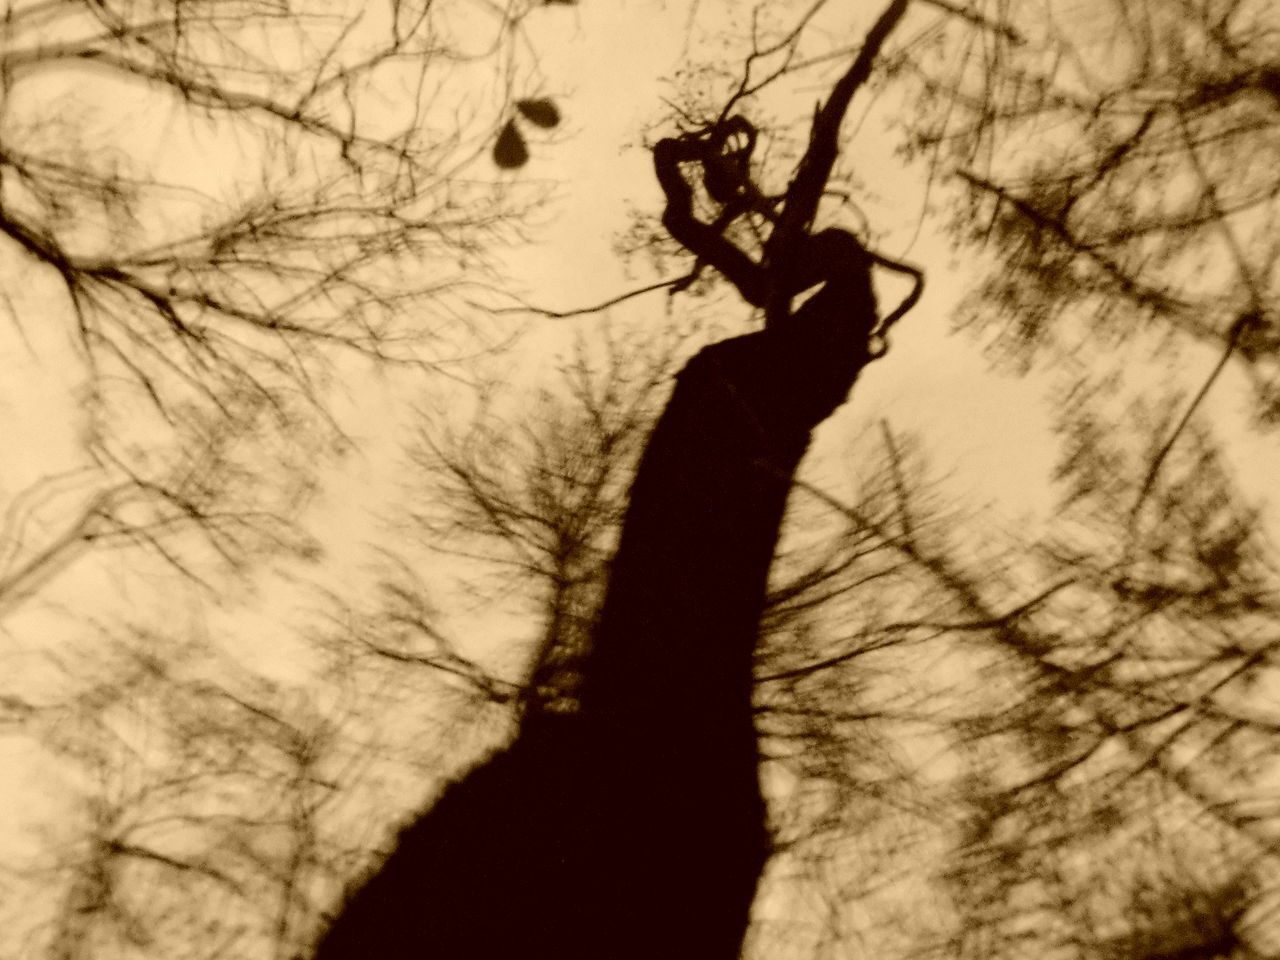 real people, silhouette, bare tree, one person, leisure activity, human hand, tree, human body part, branch, lifestyles, men, outdoors, day, close-up, sky, people